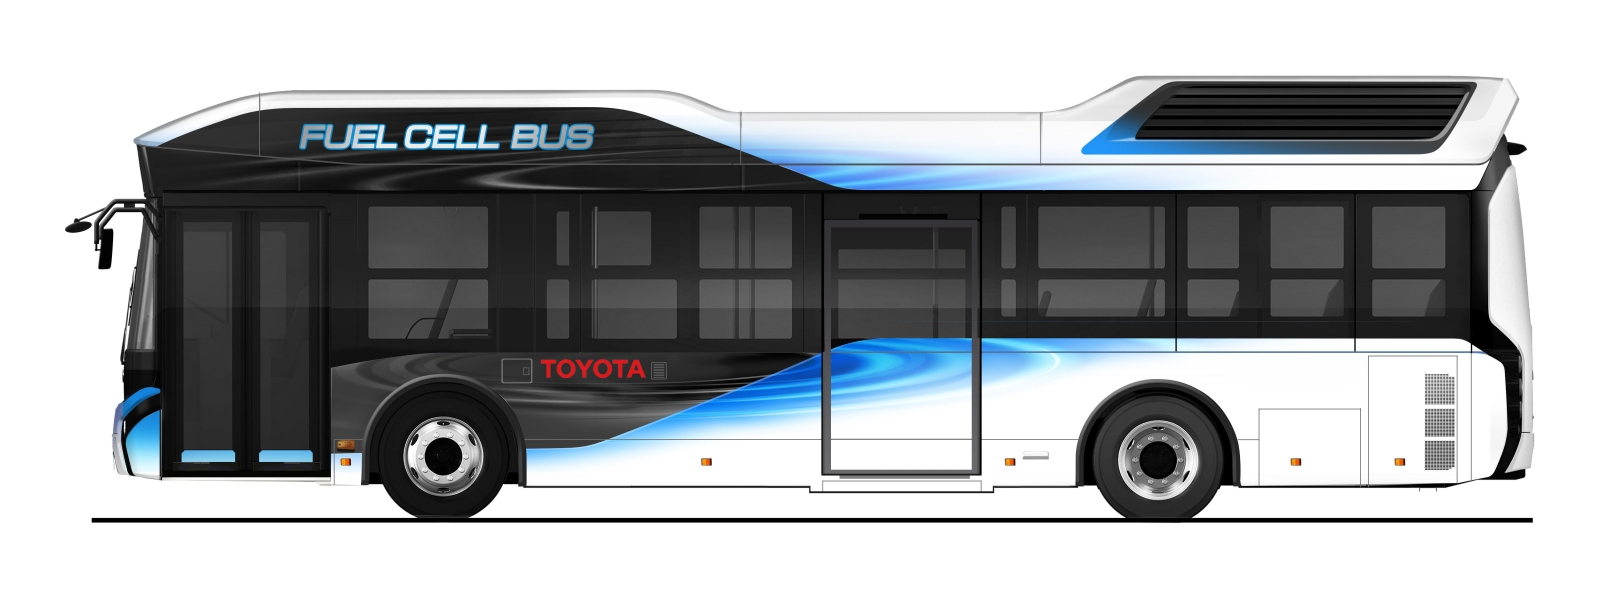 toyota-fuel-cell-bus-2.jpg